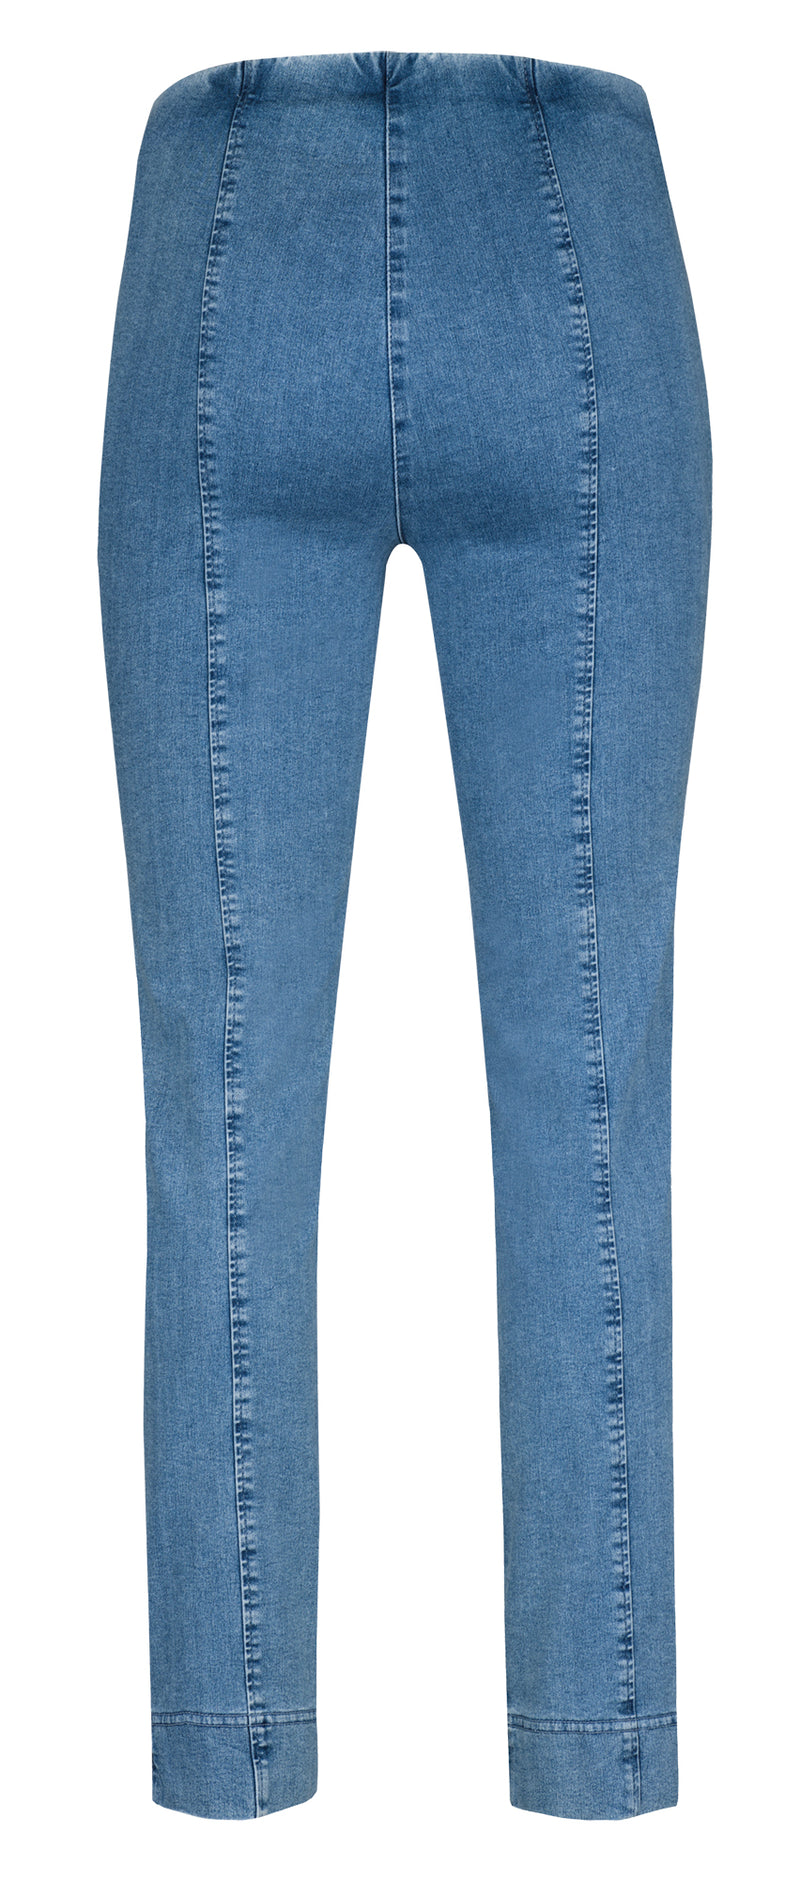 Robell Marie Stretch Denim Jean